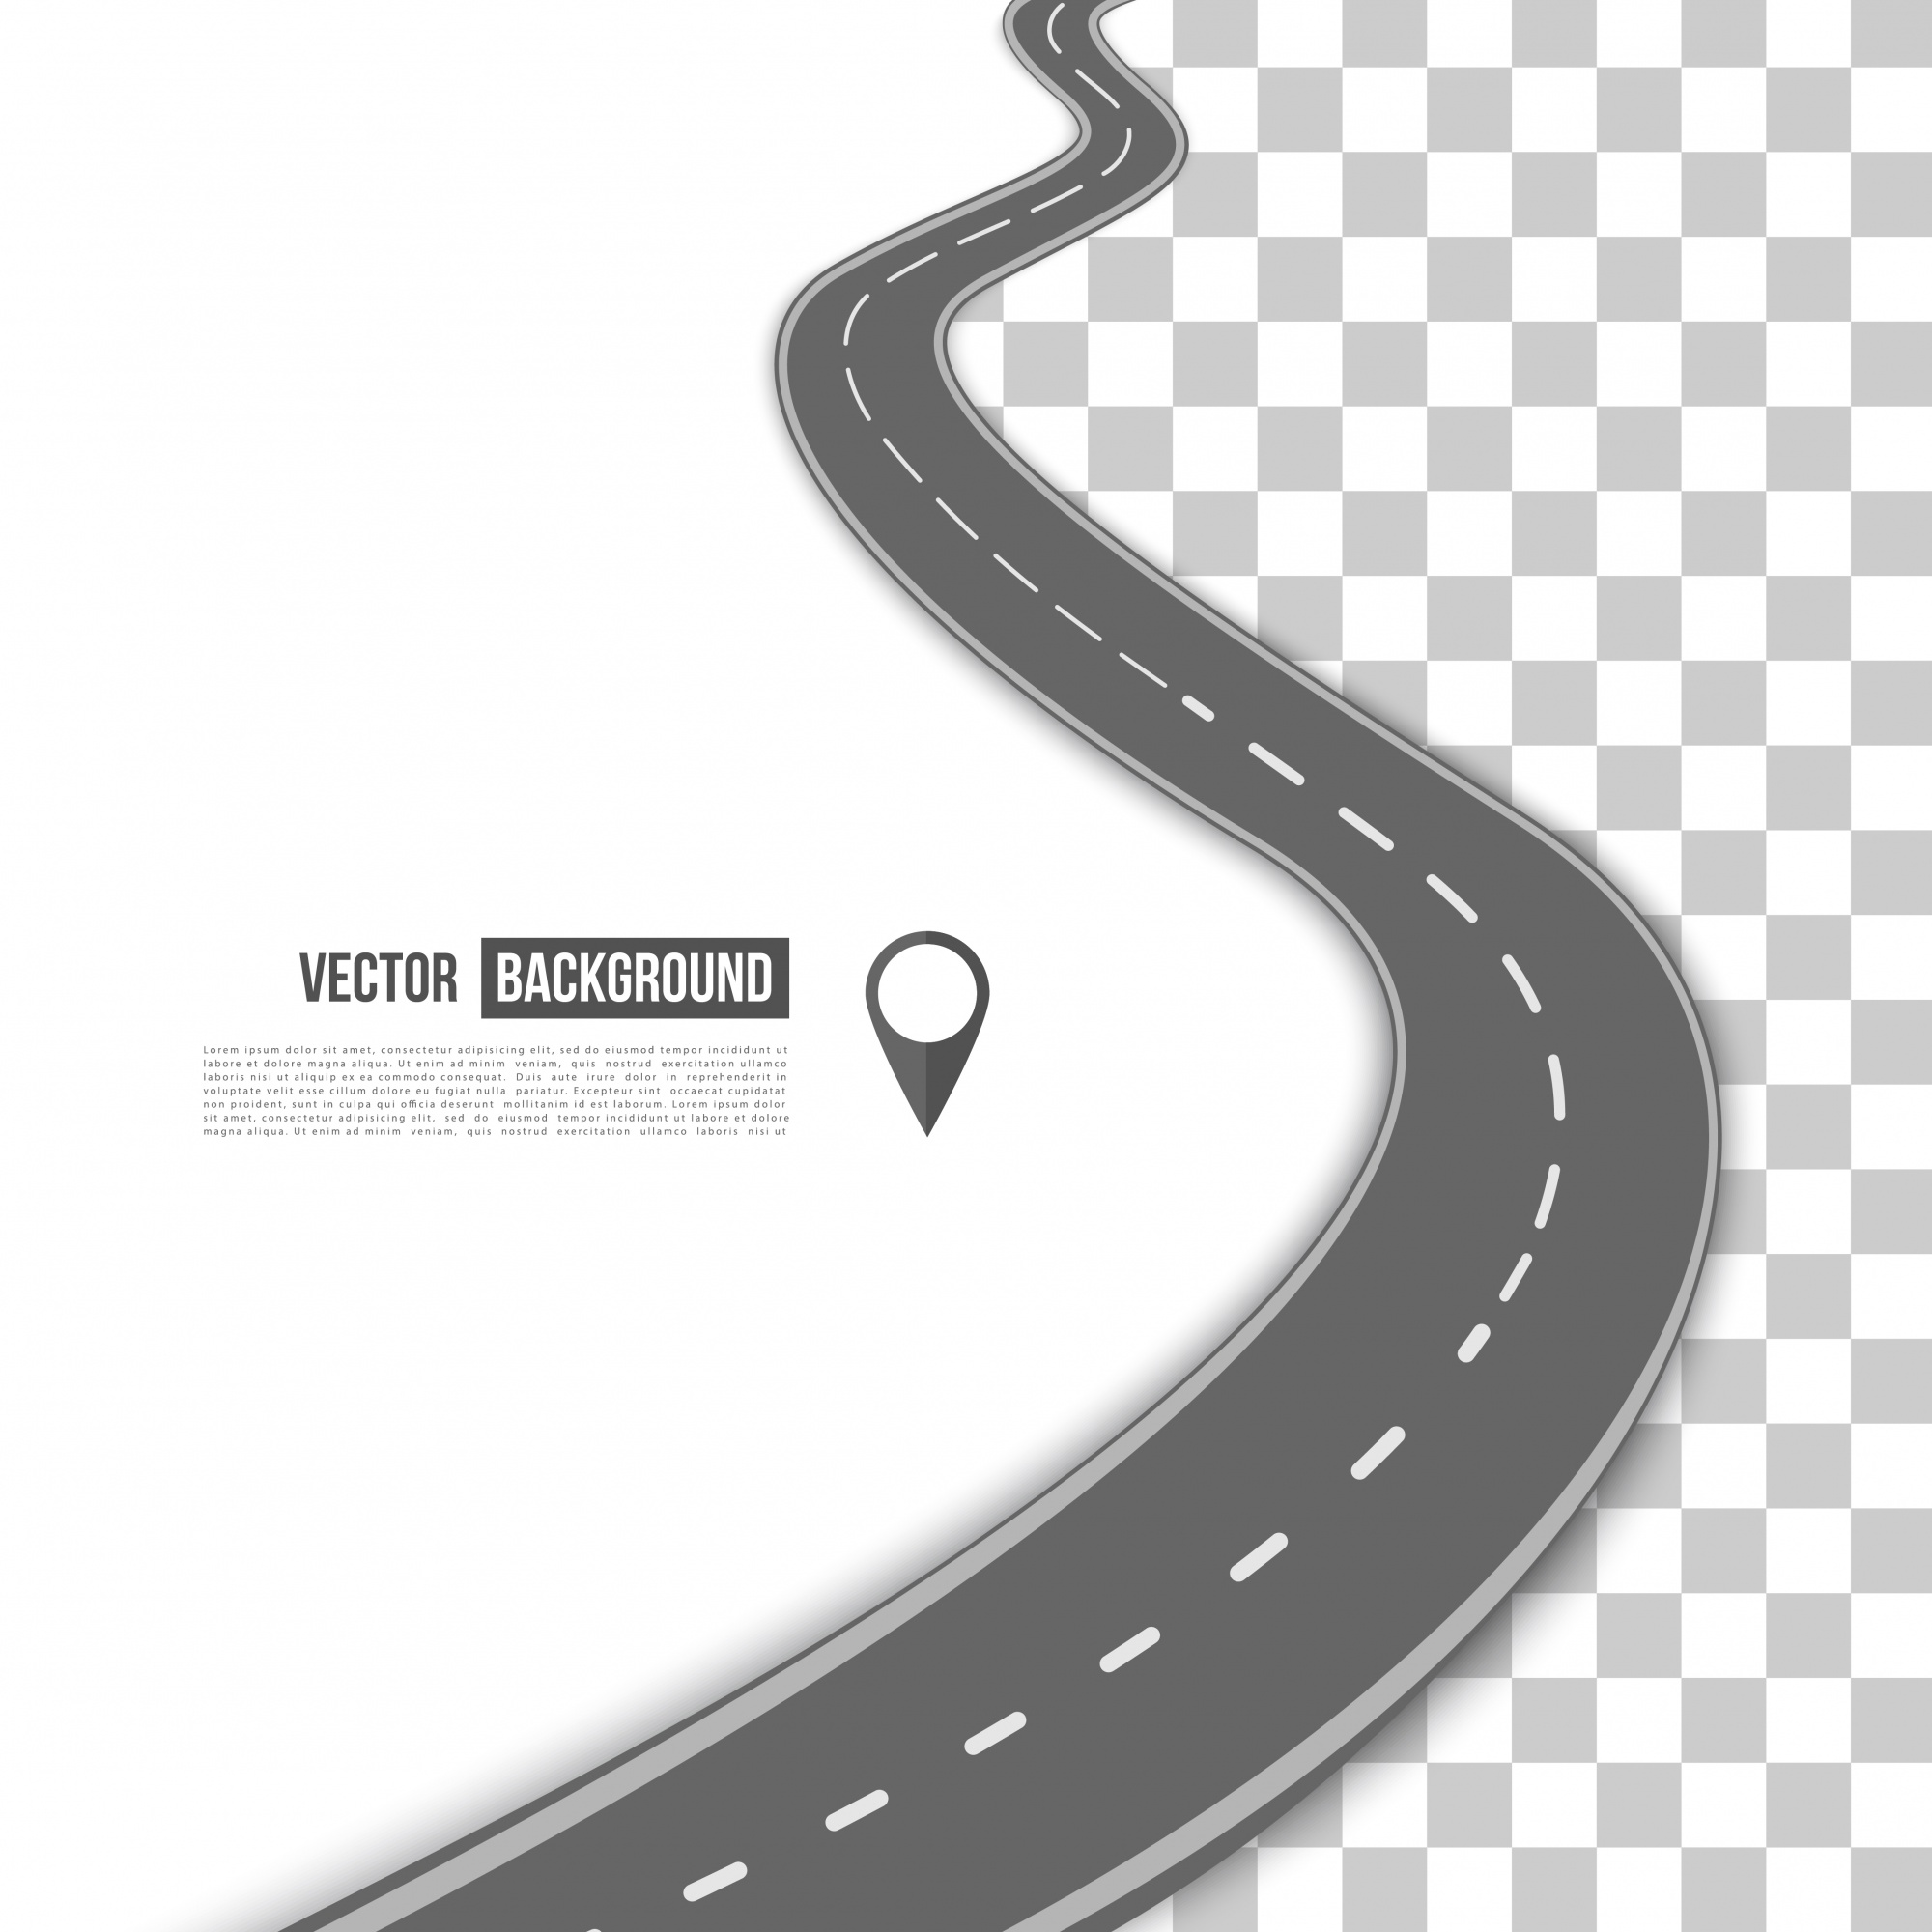 Vector path on the road.